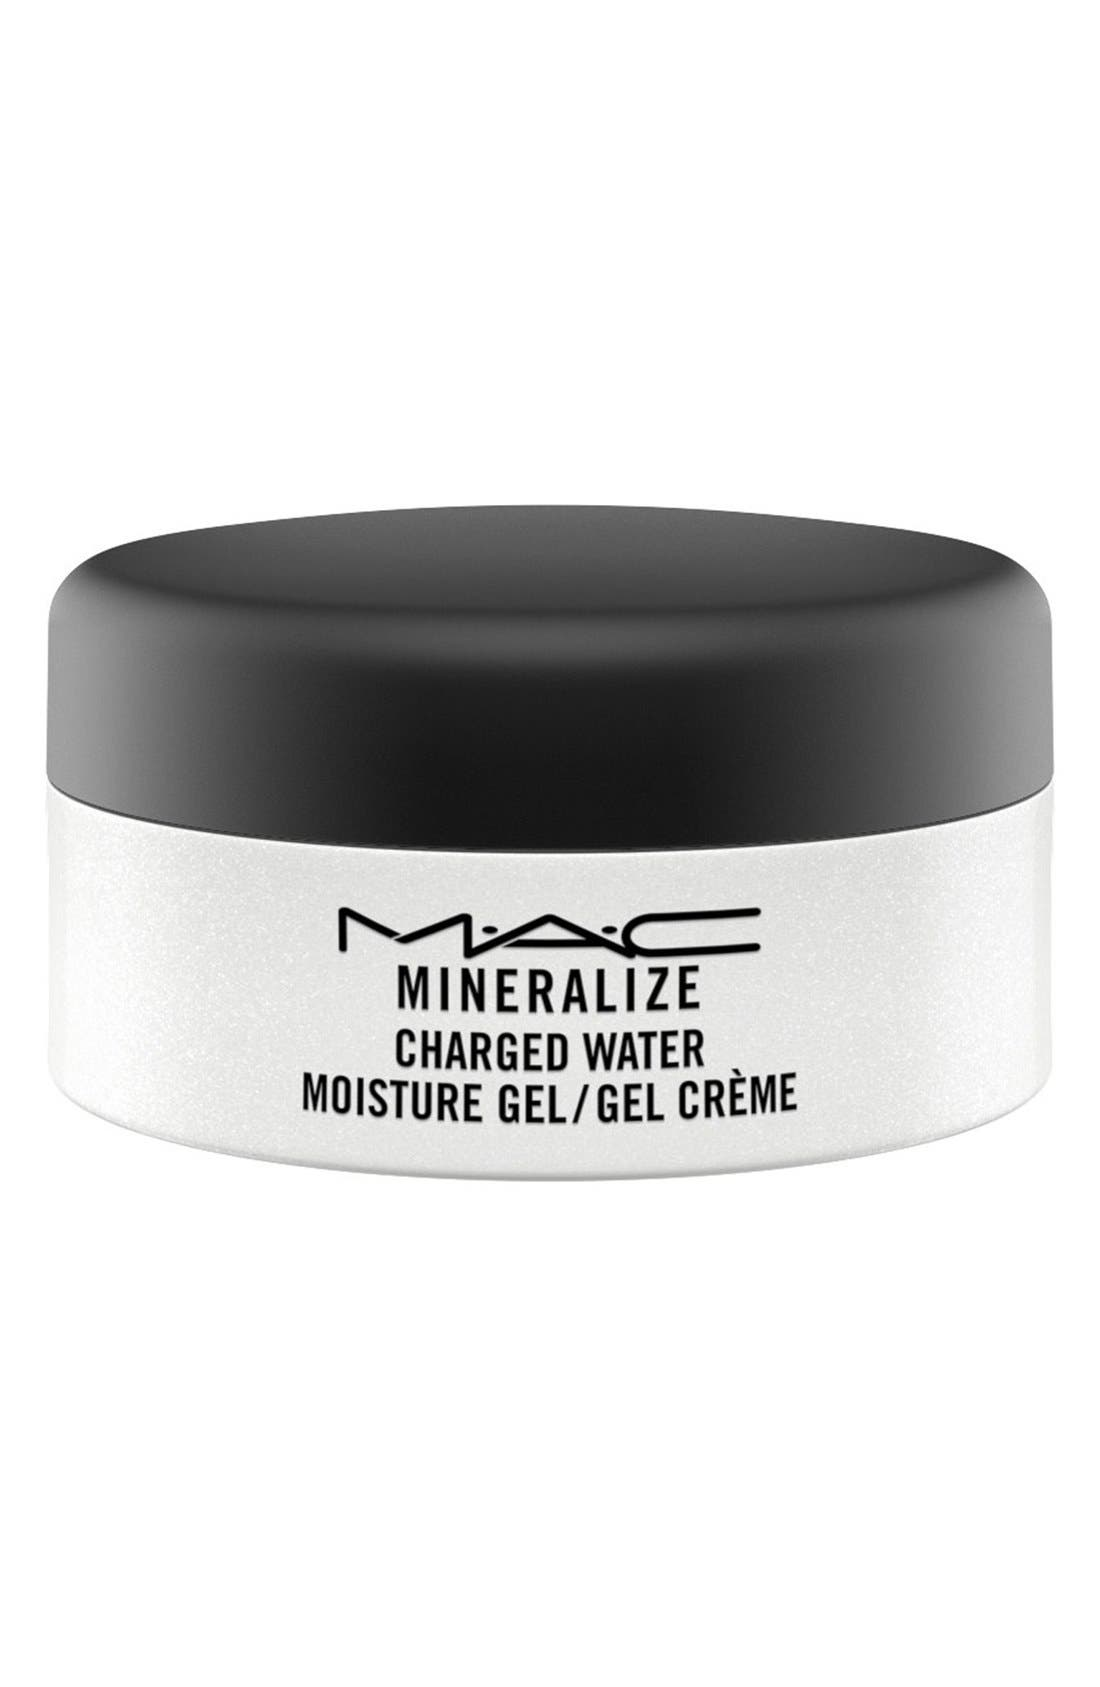 MAC Mineralize Charged Water Moisture Gel,                             Main thumbnail 1, color,                             NO COLOR